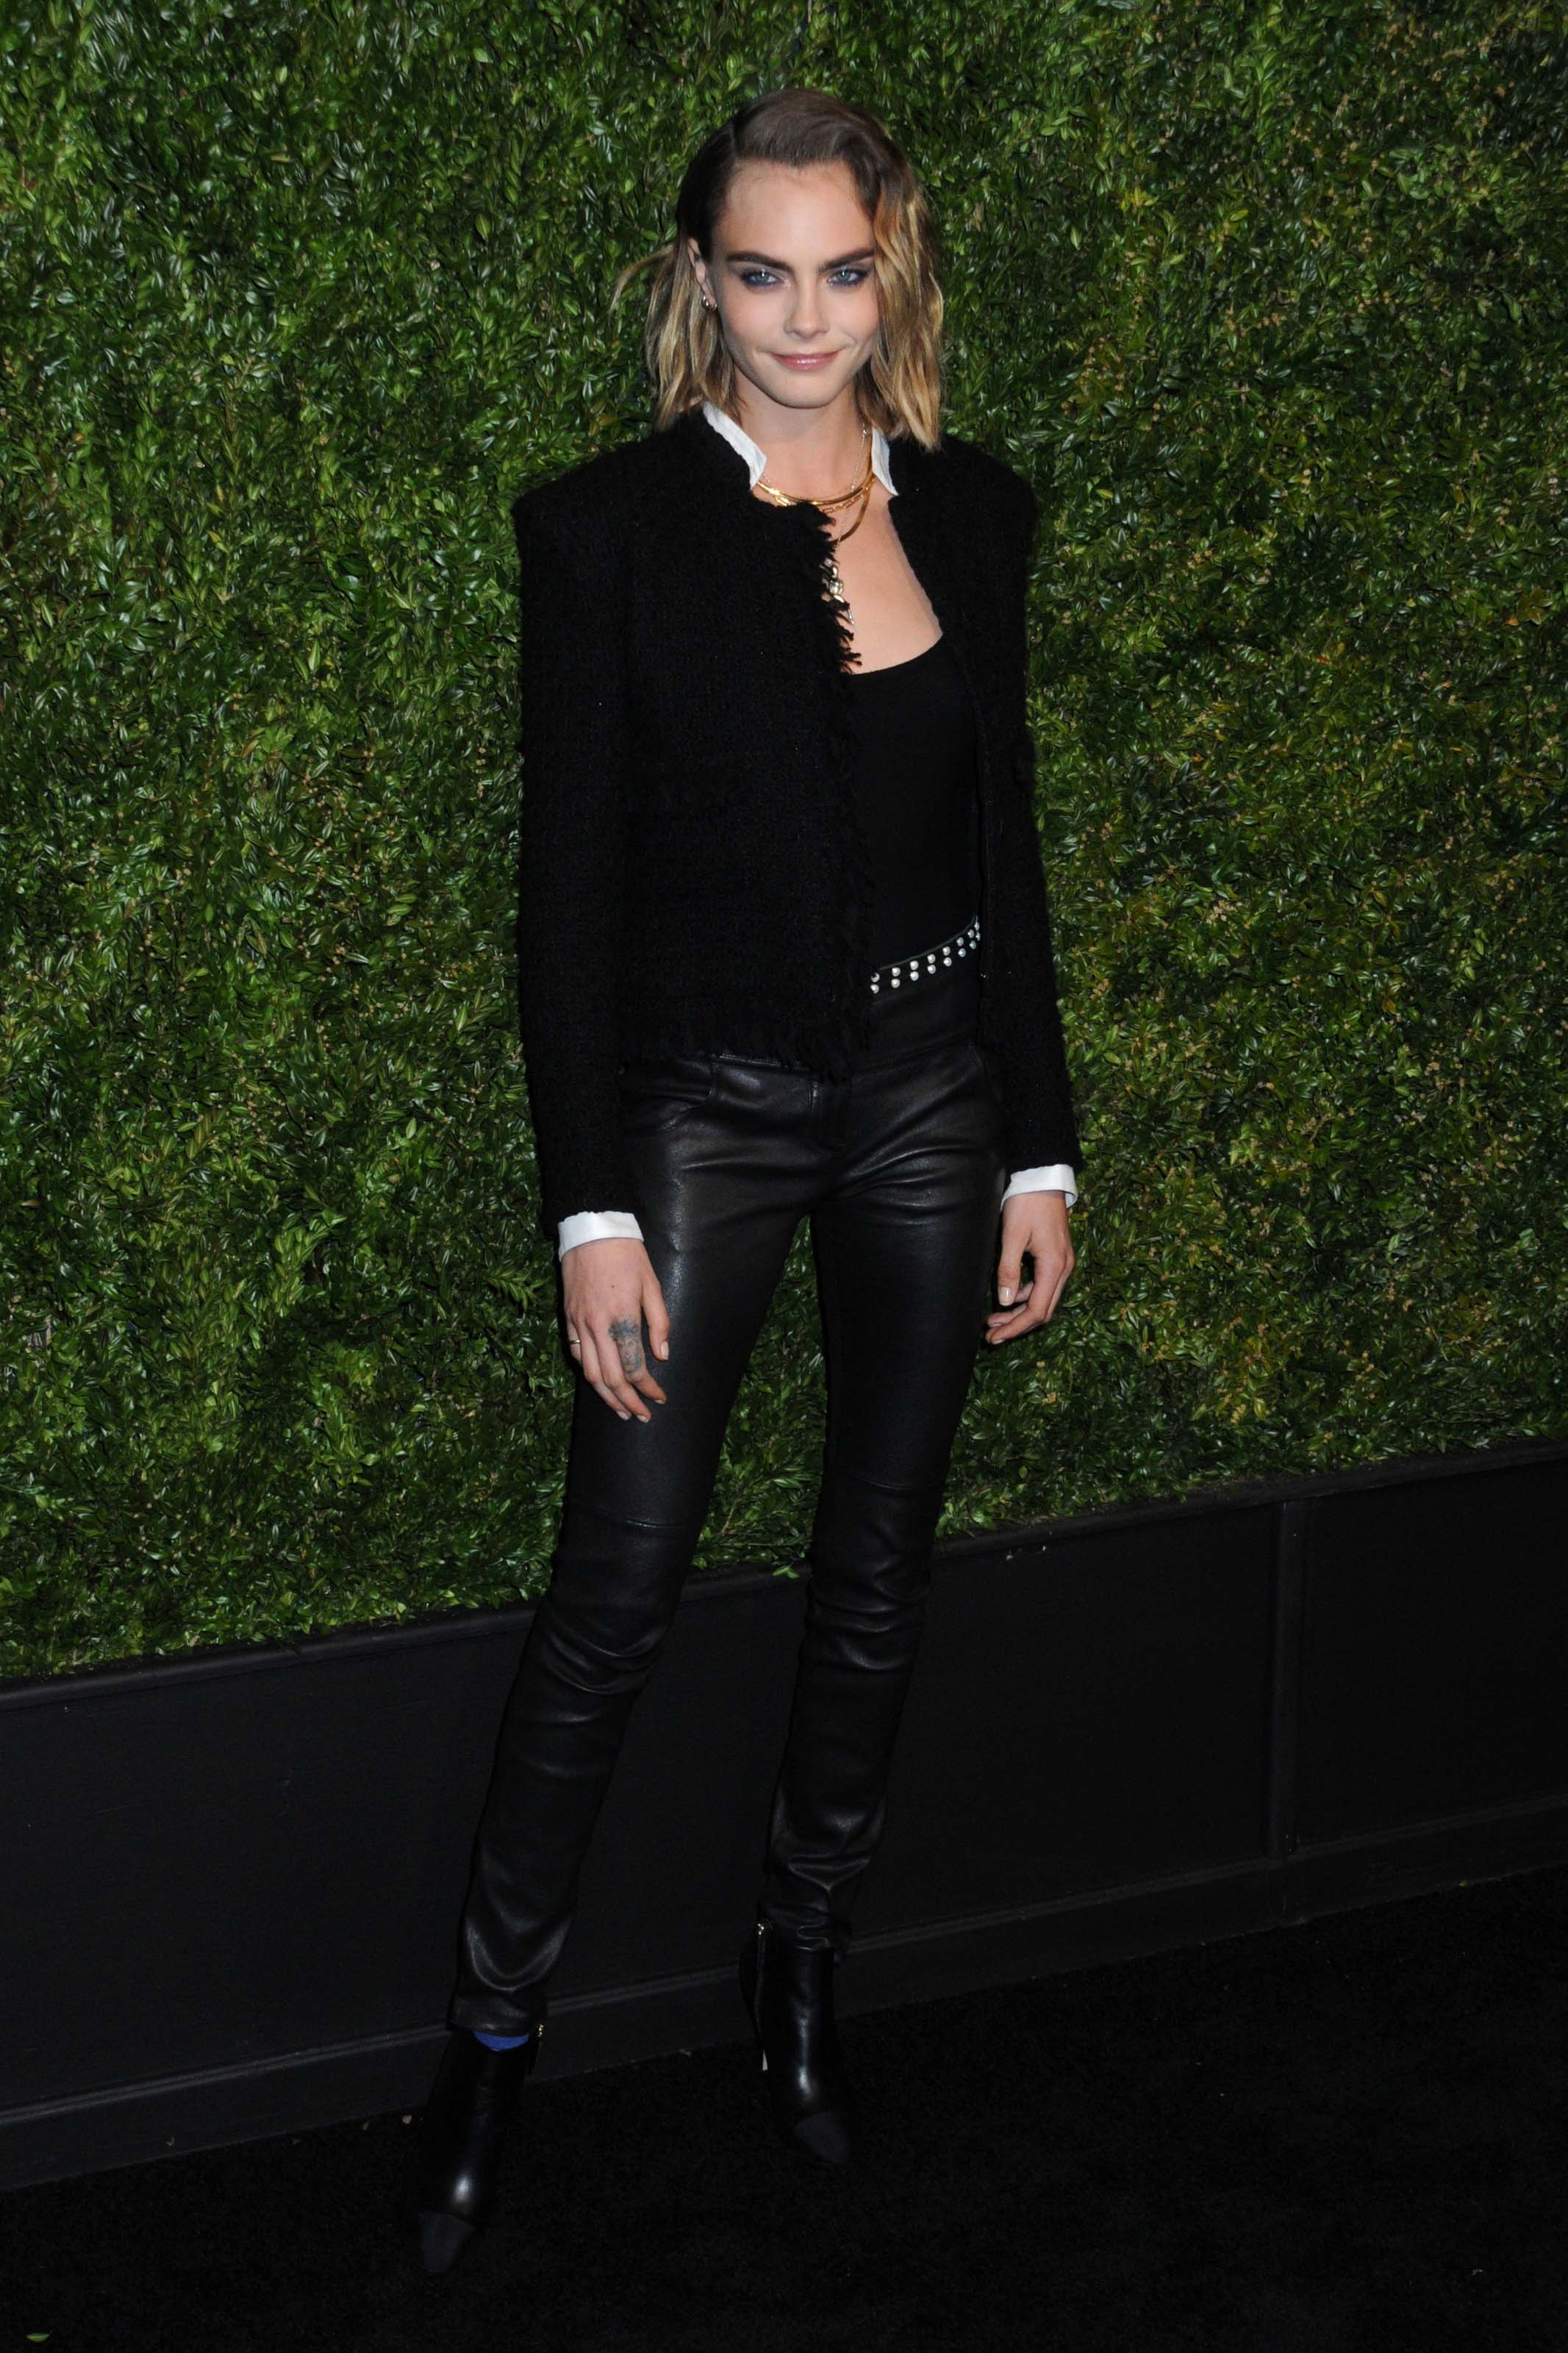 Cara Delevingne attends 14th Annual Tribeca Film Festival Artists Dinner hosted by Chanel in New Yor